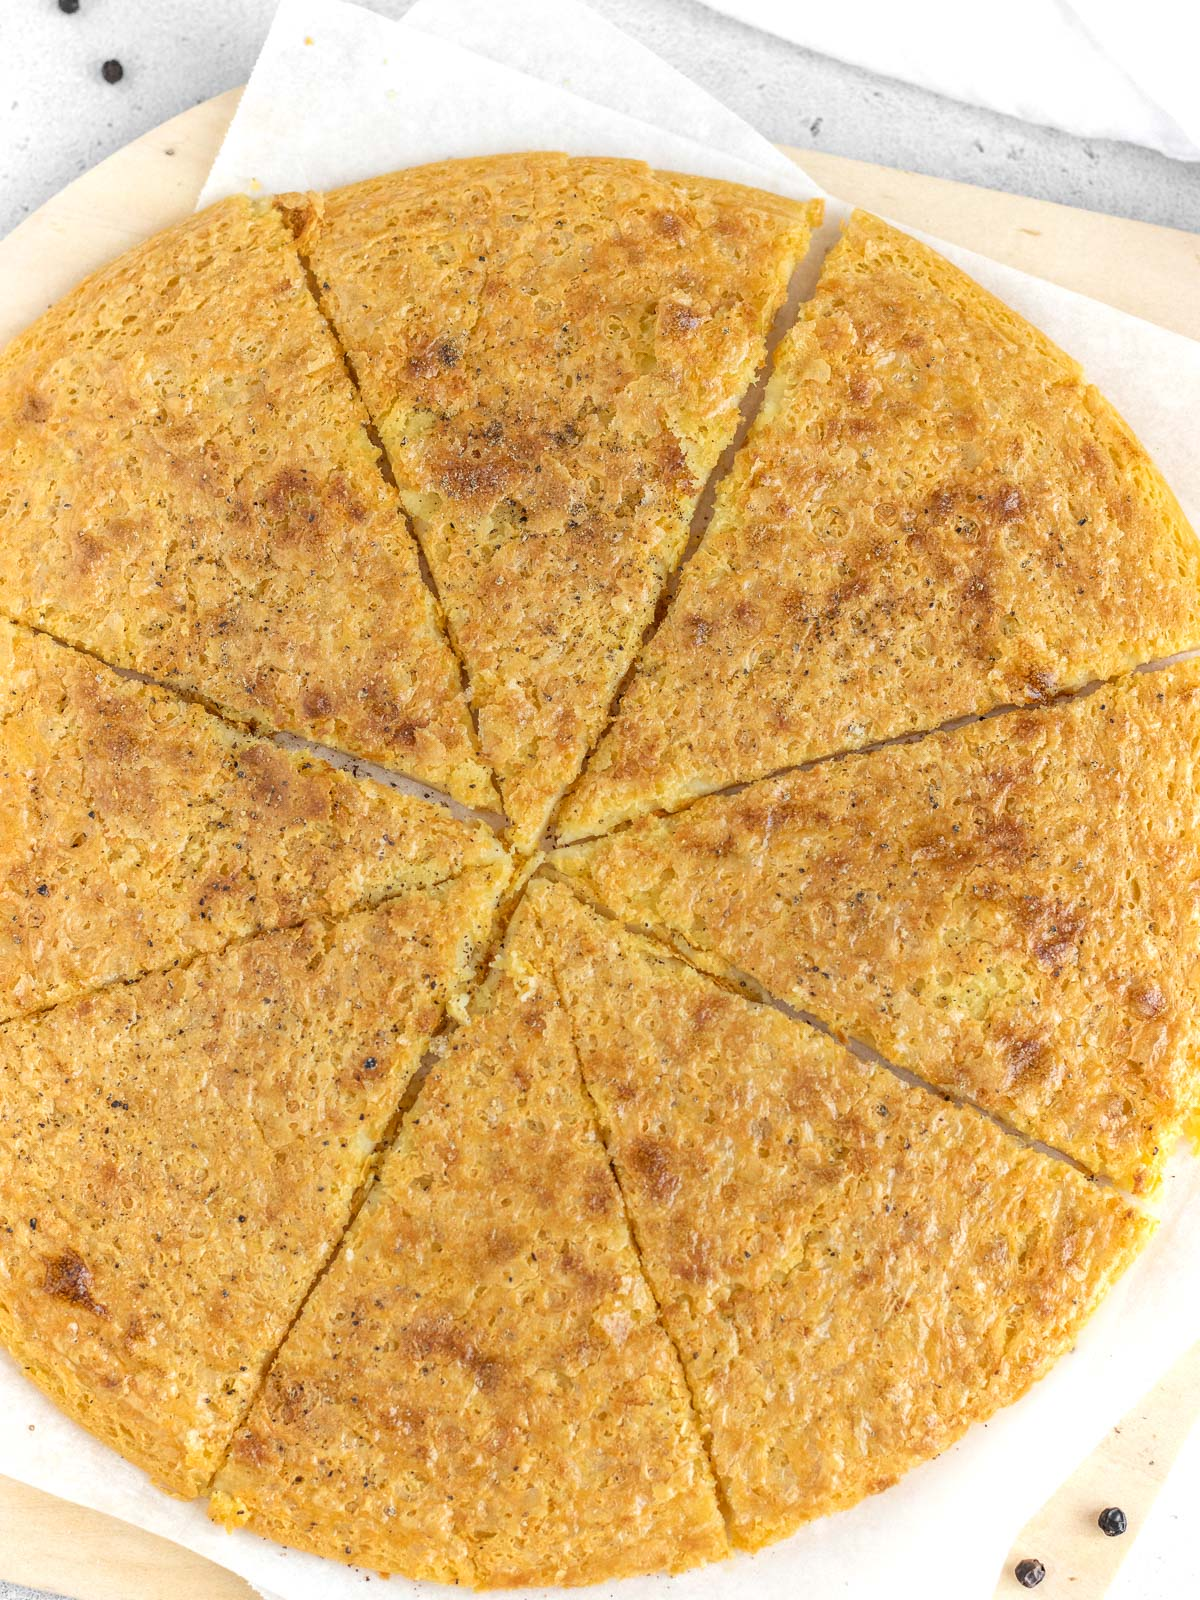 just baked farinata cut and sprinkled with pepper